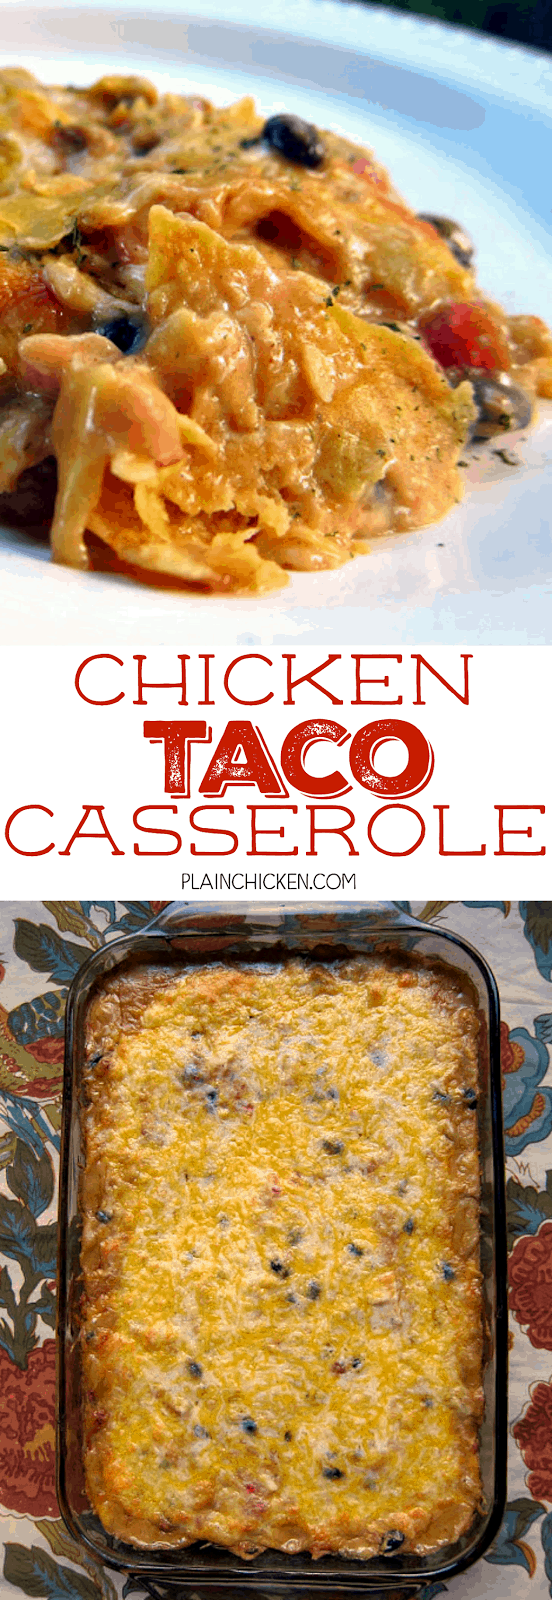 Chicken Taco Casserole - SO GOOD! Corn tortillas, cream of chicken soup, sour cream, Rotel, black beans, taco seasoning, chicken and cheese. Takes a minute to assemble and it on the table in 30 minutes. Everyone cleaned their plate and went for seconds. Great casserole for a potluck. Can also freeze for later. Quick, easy, kid friendly and delicious!